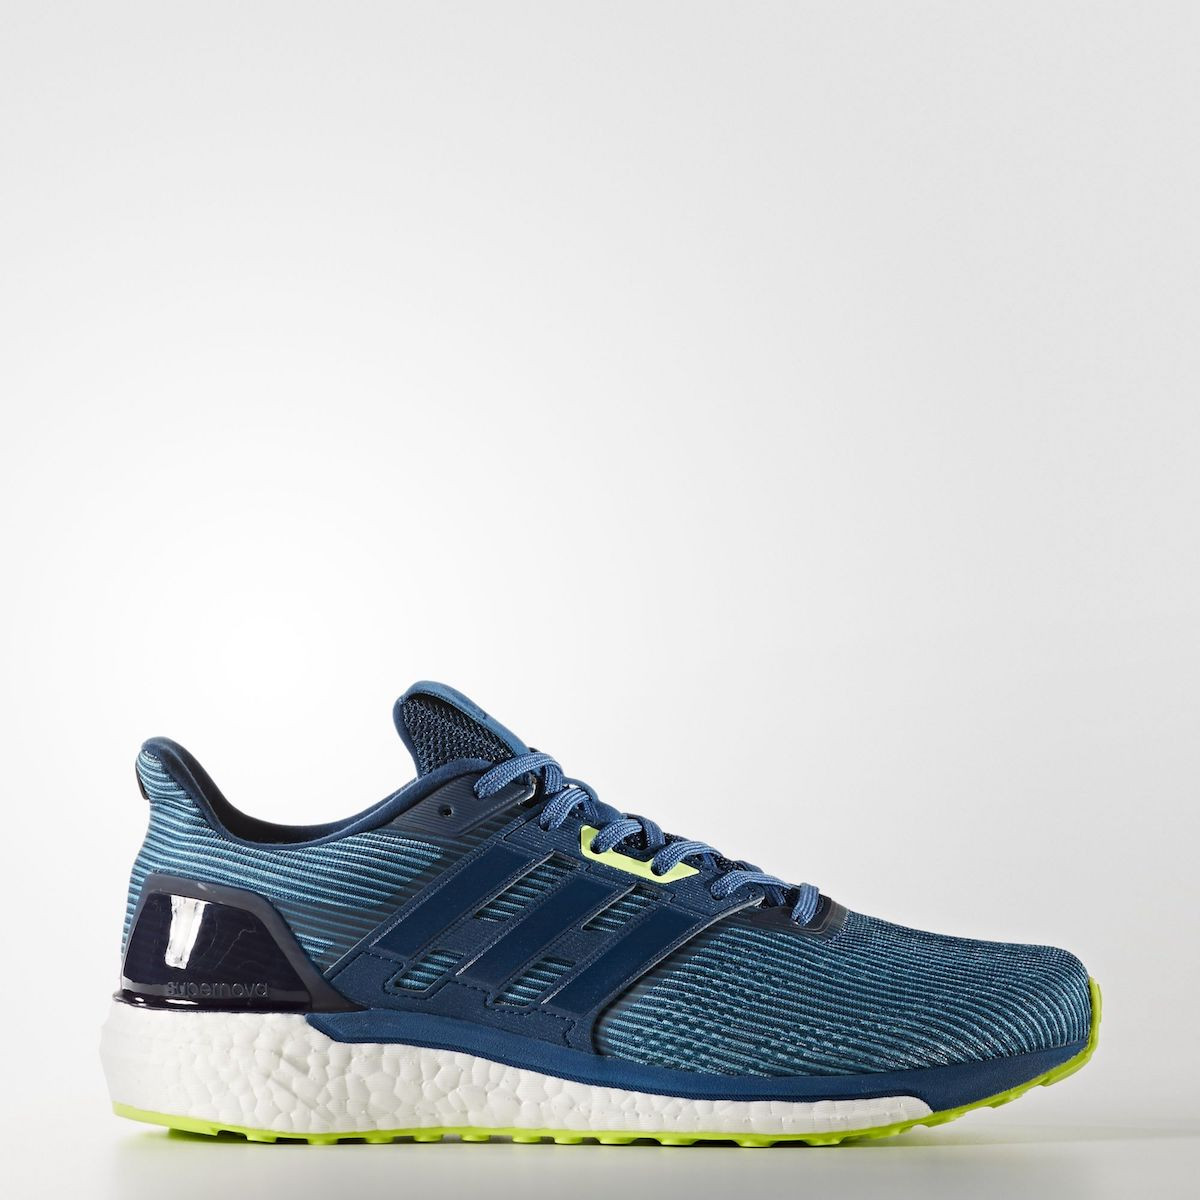 release date 9d078 37161 ... Adidas Supernova Shoes Mens Vapour BlueBlue NightCore Blue ...